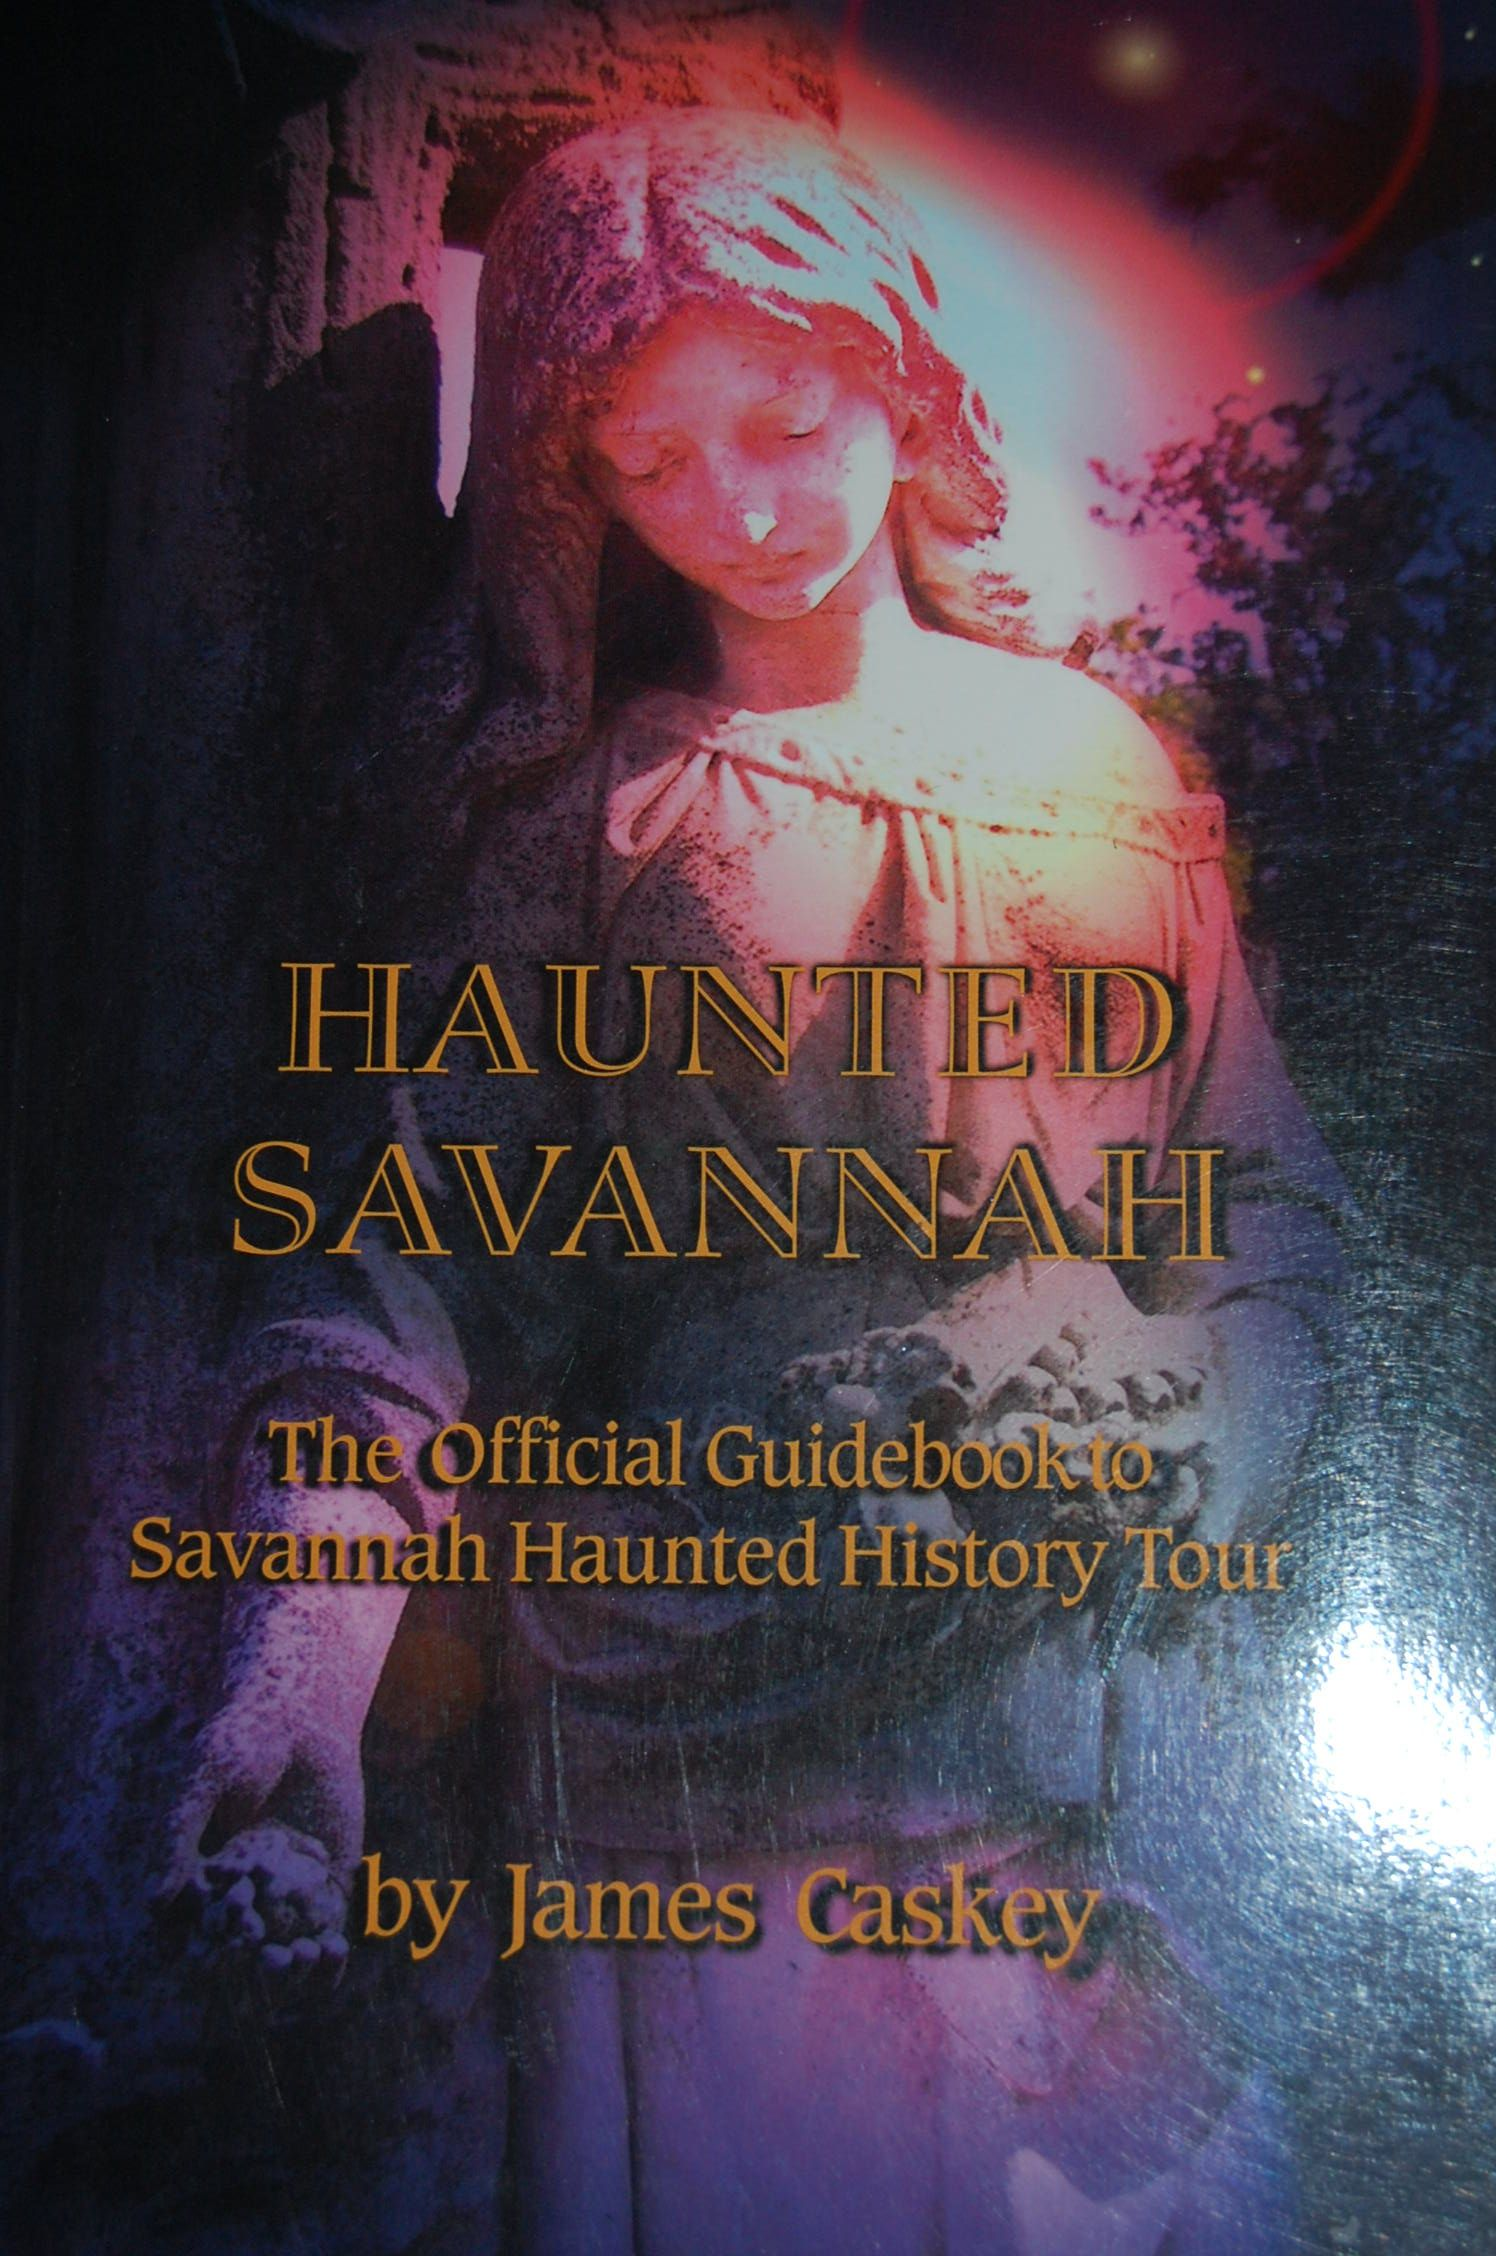 Haunted Savannah The Official Guidebook To Savannah Haunted History Tour By James Caskey When Visiting A New City Ta Haunted History Savannah Chat Haunting